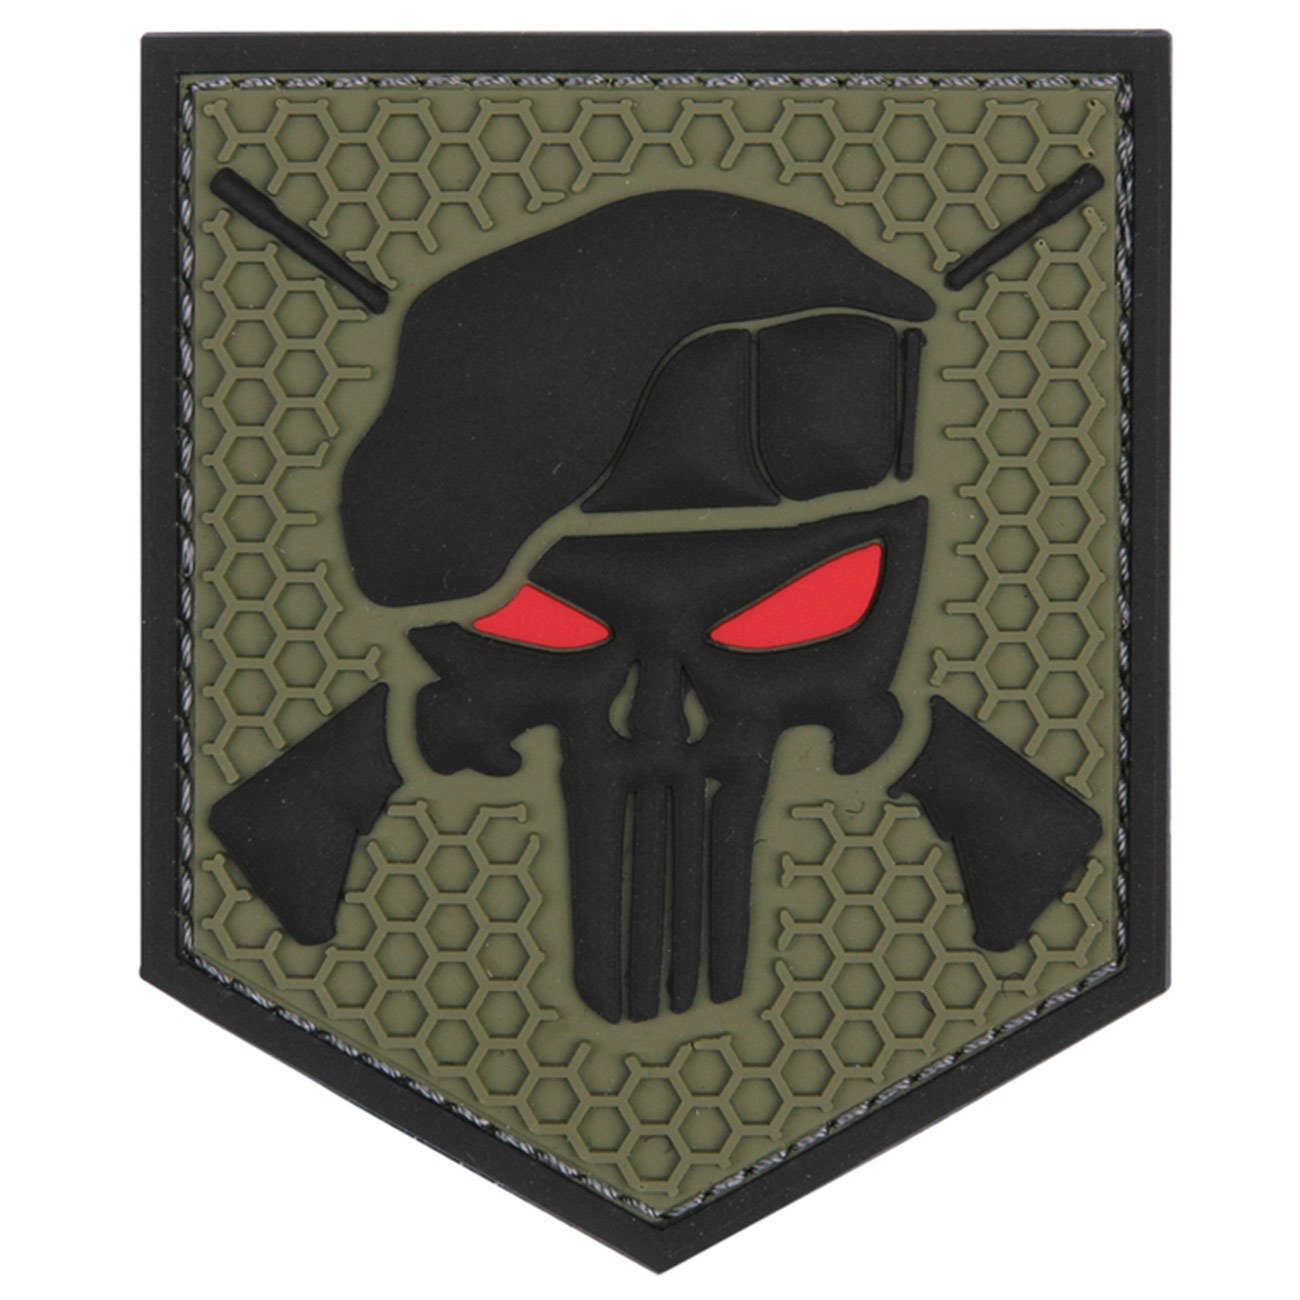 3D Rubber Patch Commando Punisher grün 0